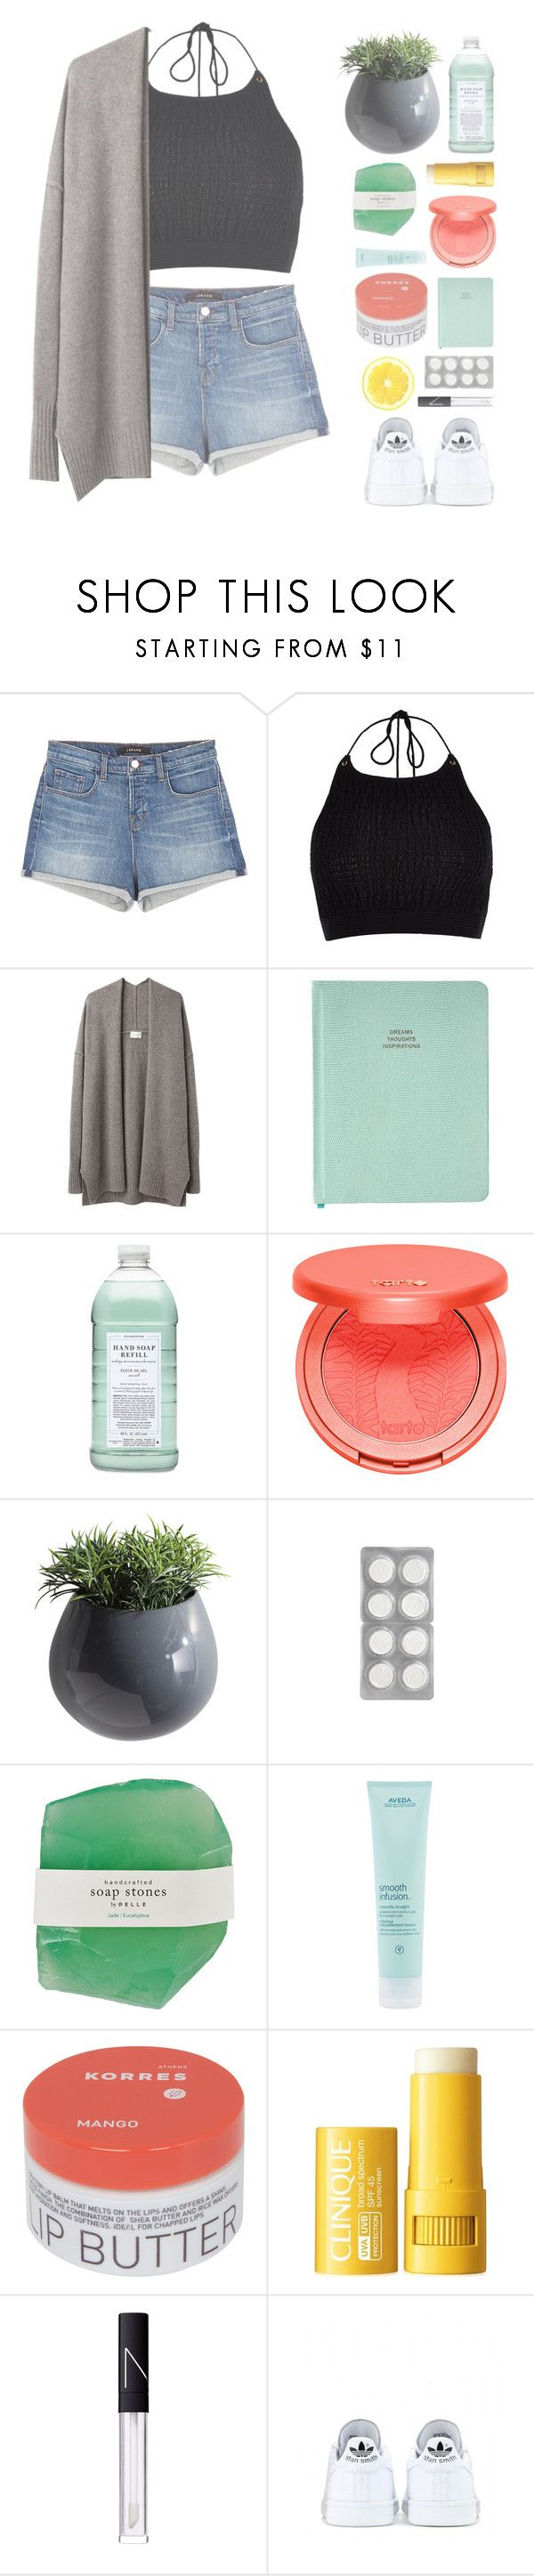 """""""▿ little things"""" by xhopefulromanticx ❤ liked on Polyvore featuring J Brand, River Island, Giada Forte, Williams-Sonoma, tarte, Dot & Bo, Aveda, Korres, Clinique and NARS Cosmetics"""